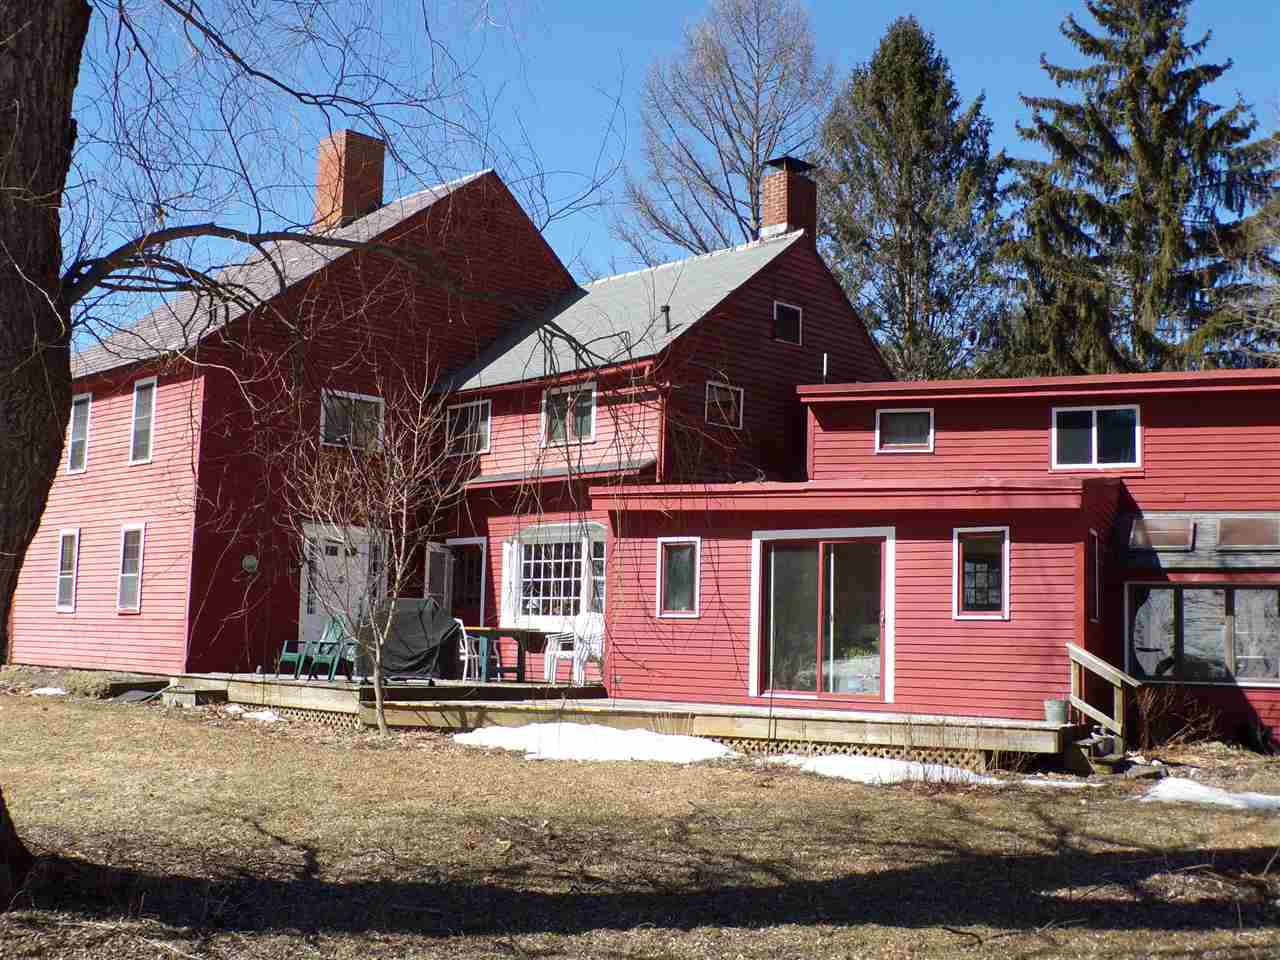 MLS 4743513: 3 White Brook Road, Gilsum NH